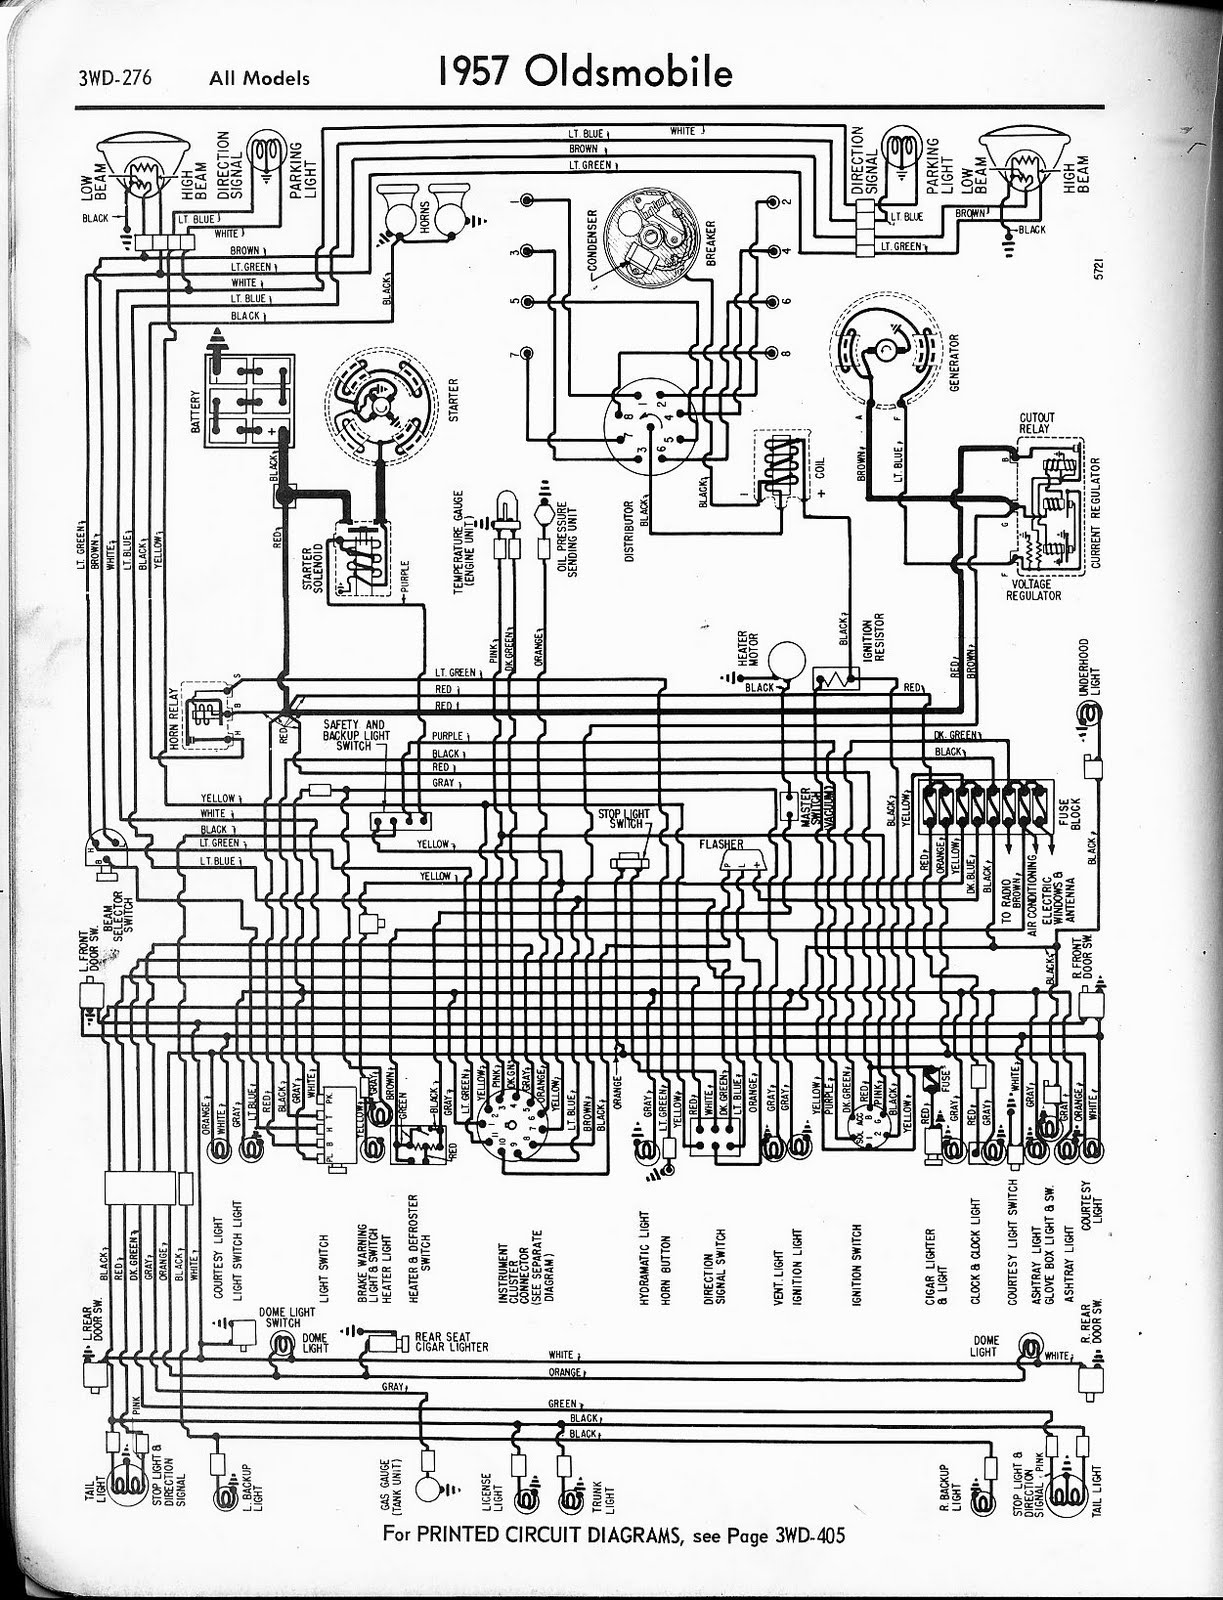 Oldsmobile All Models Wiring Diagram